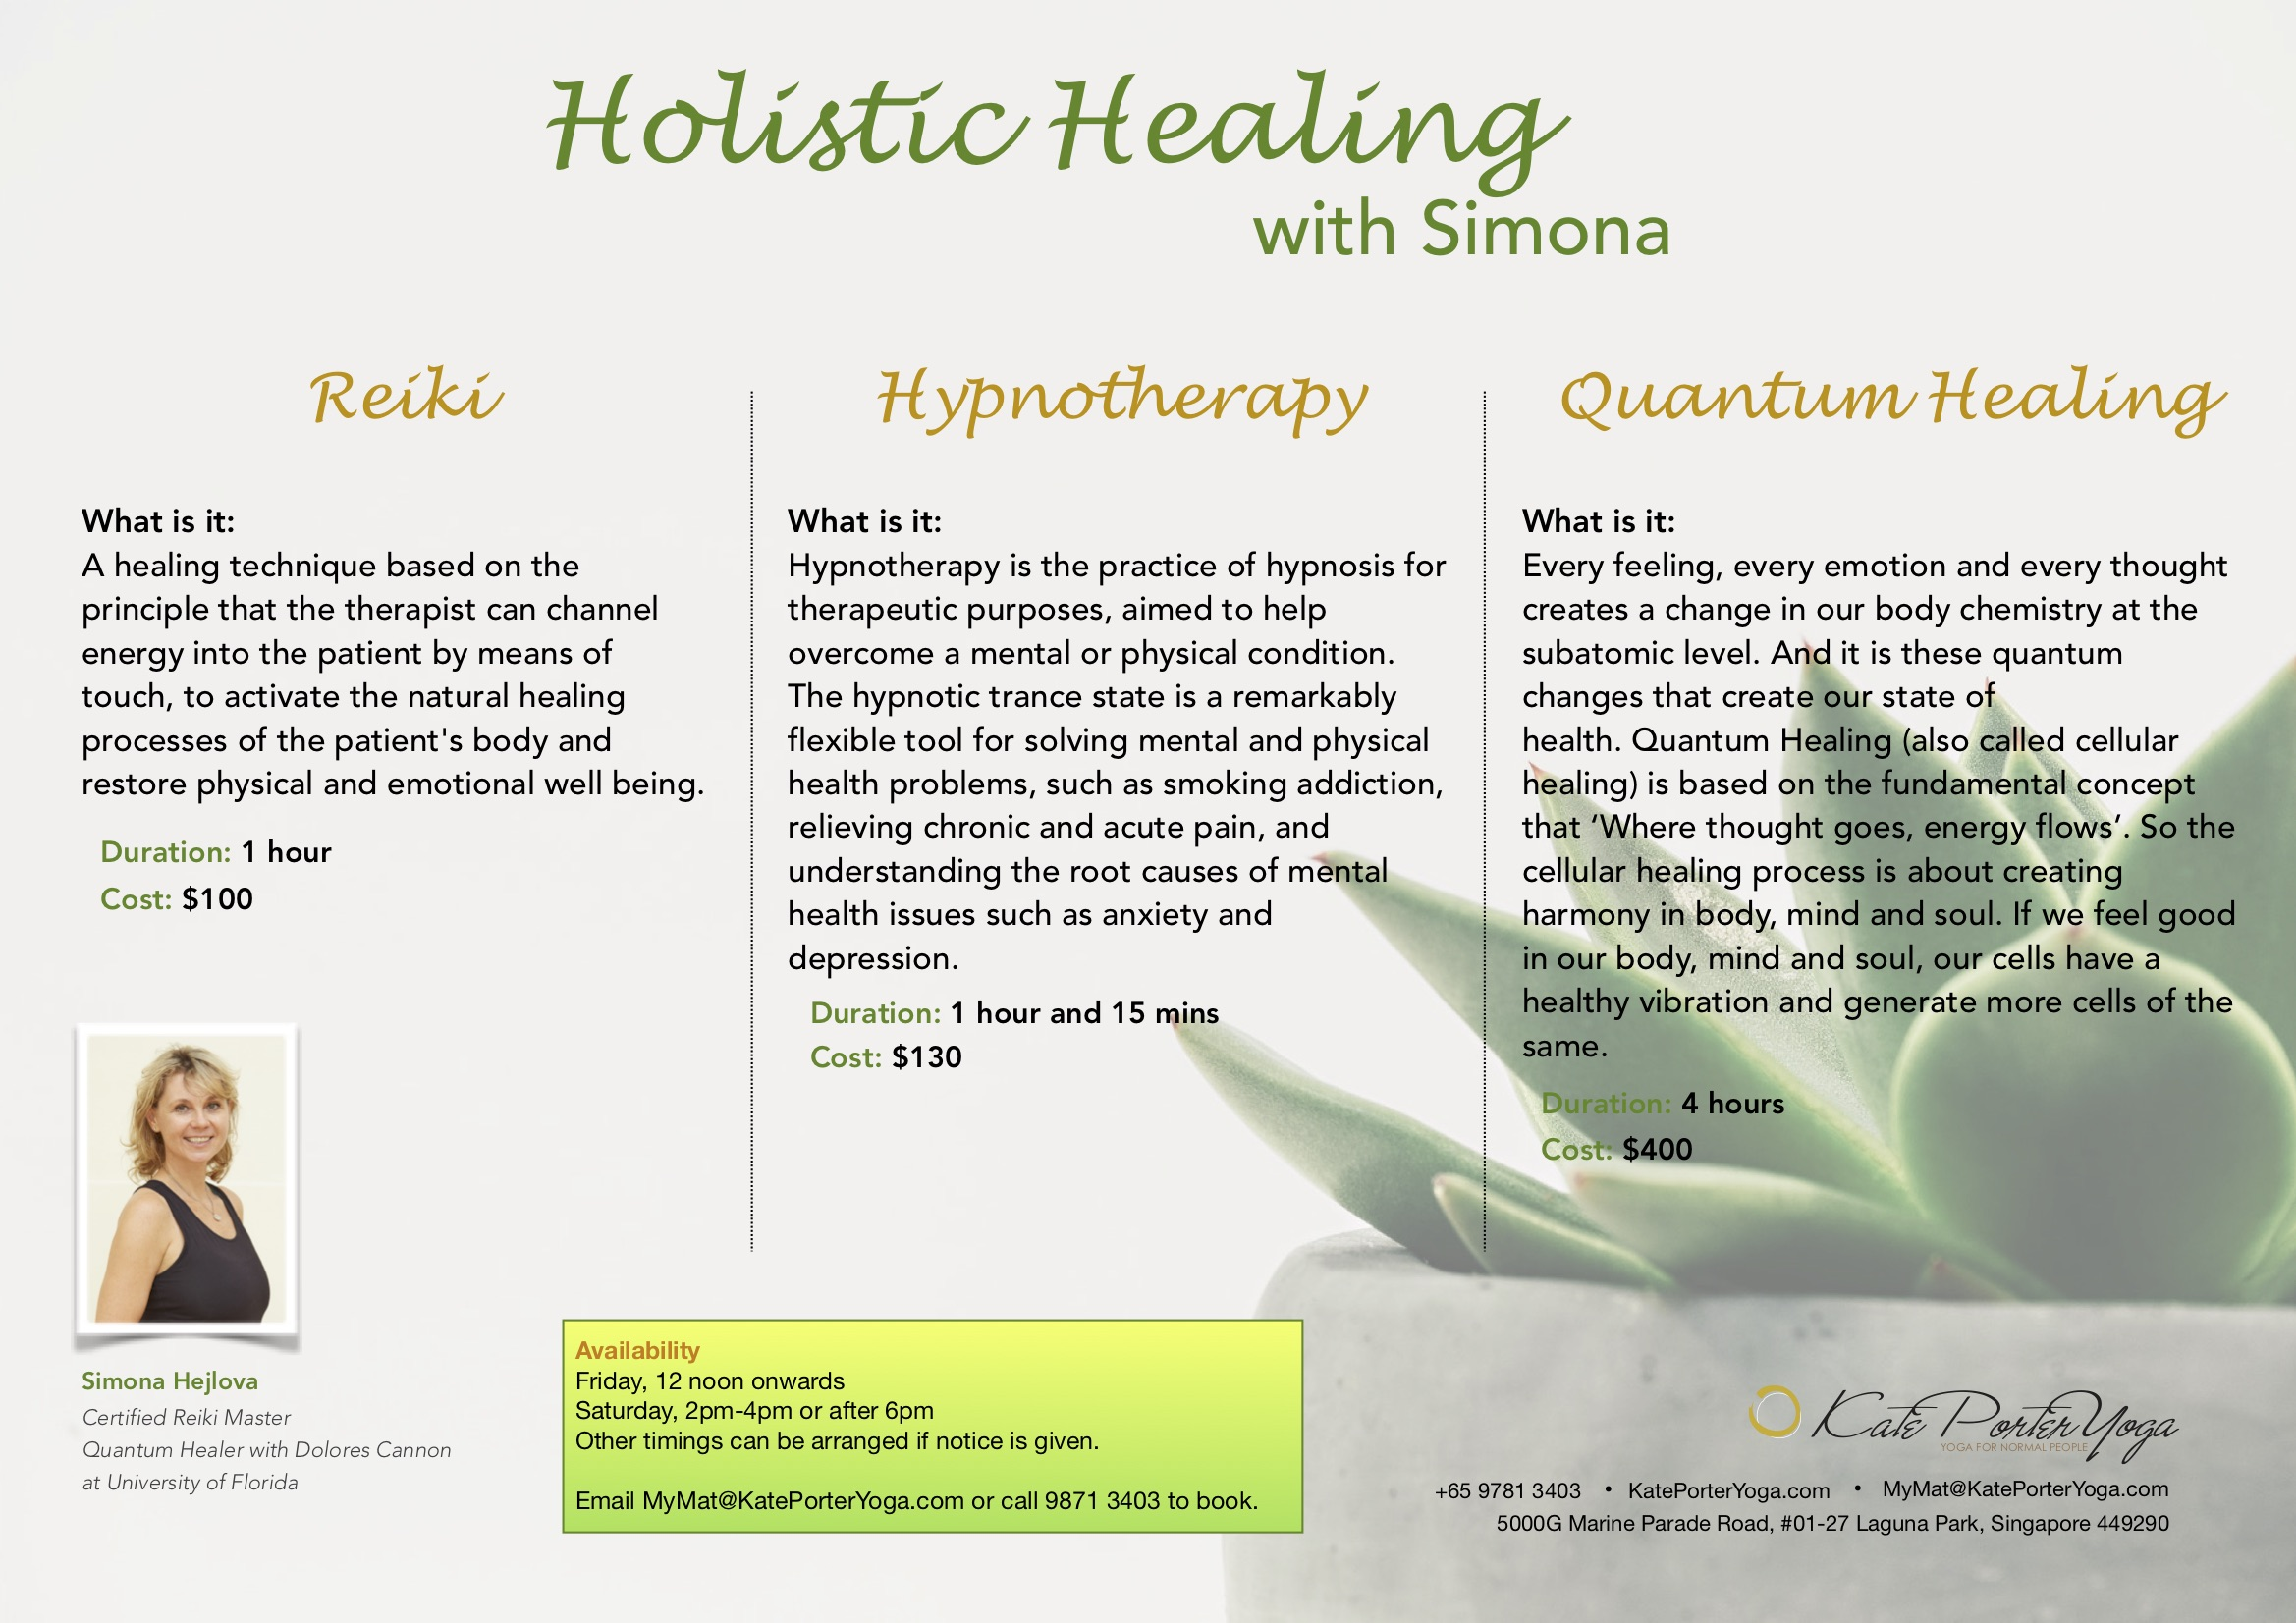 Holistic Healing with Simona